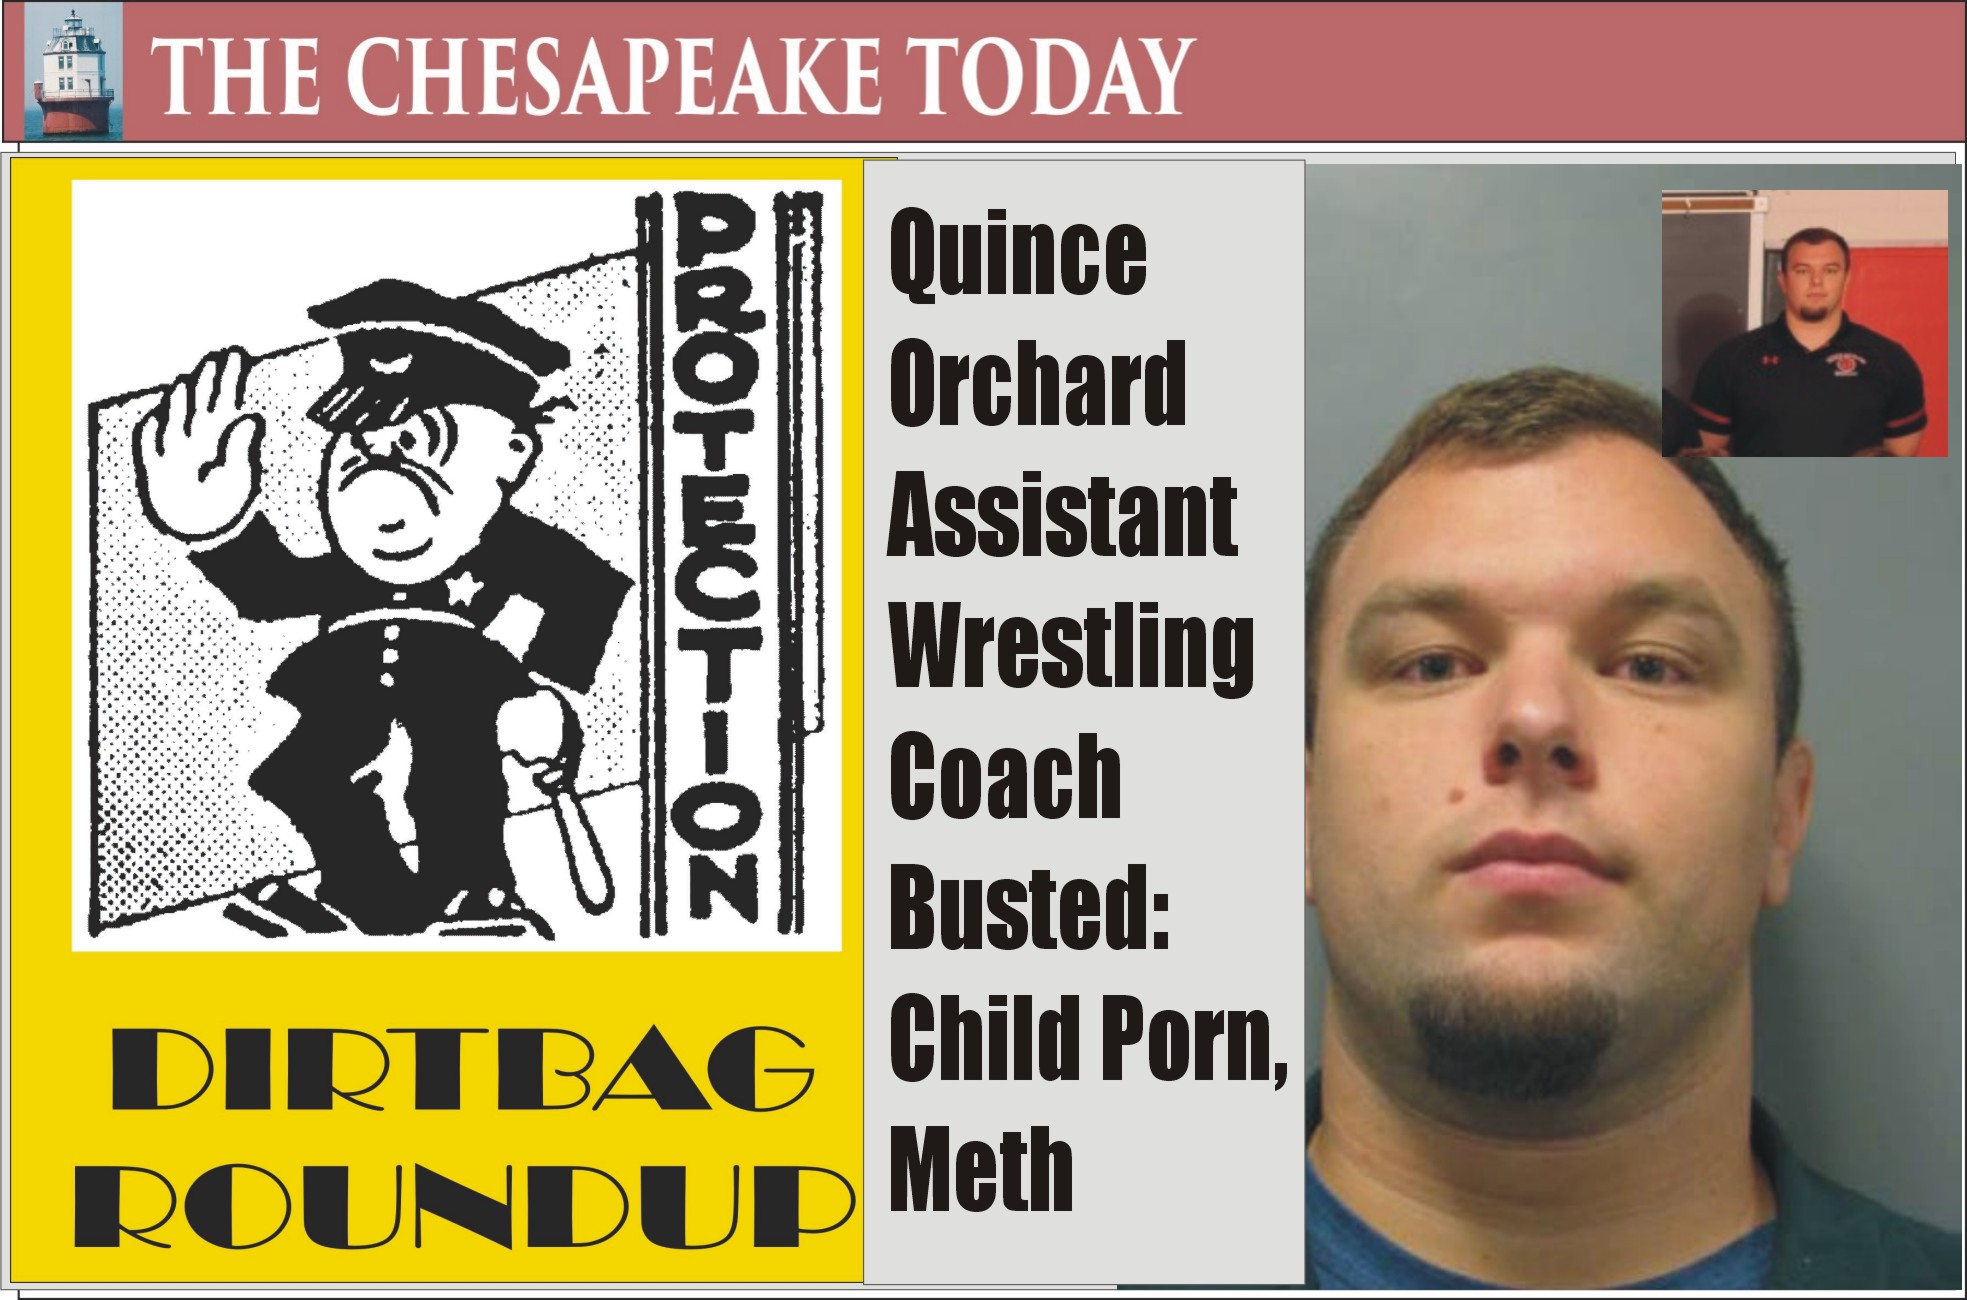 DIRTBAG ROUNDUP: Quince Orchard High School Assistant Wrestling Coach Dake Williams Charged in   Meth Importing and Child Porn Possession